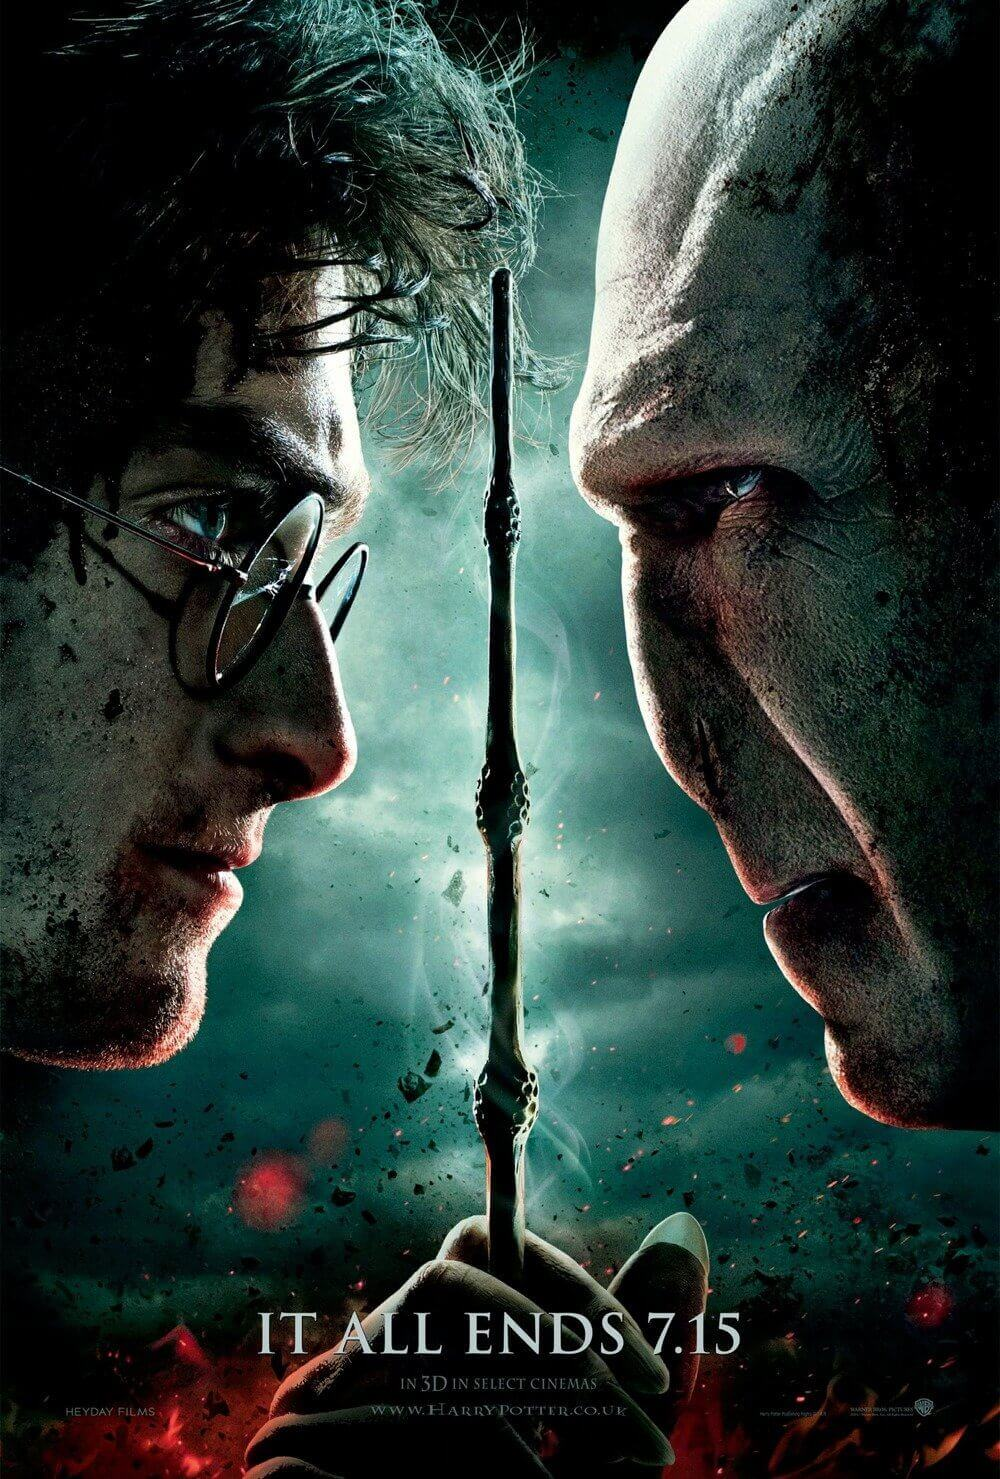 Harry Potter and the Deathly Hallows- Part 2